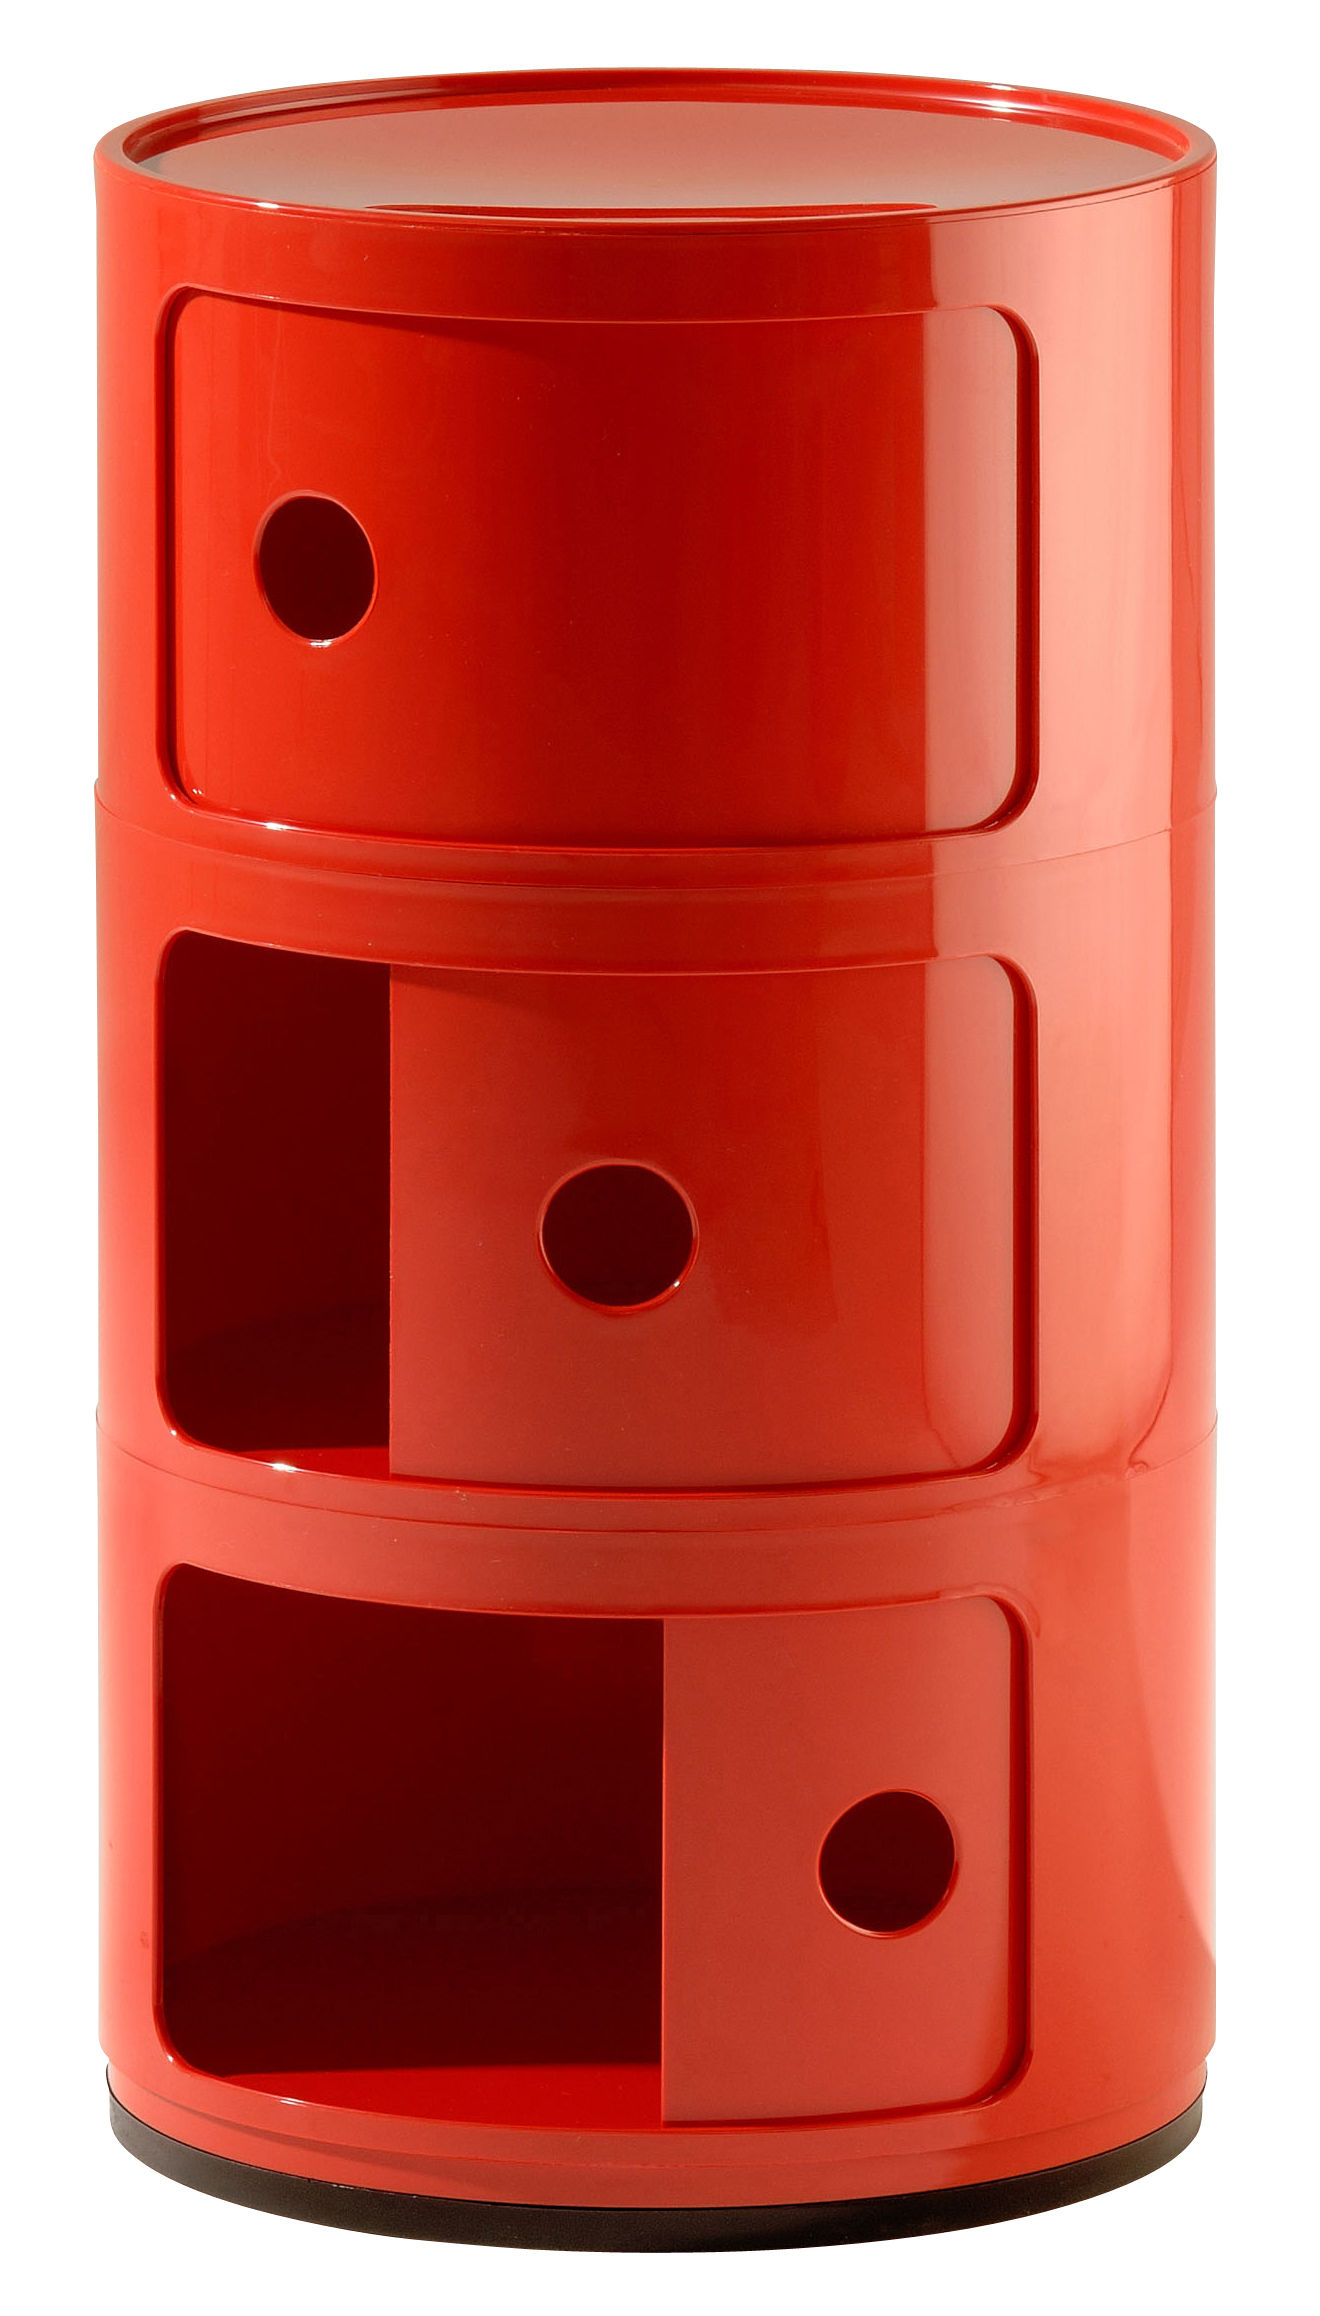 Mobilier - Mobilier Ados - Rangement Componibili / 3 tiroirs - H 58 cm - Kartell - Rouge - ABS